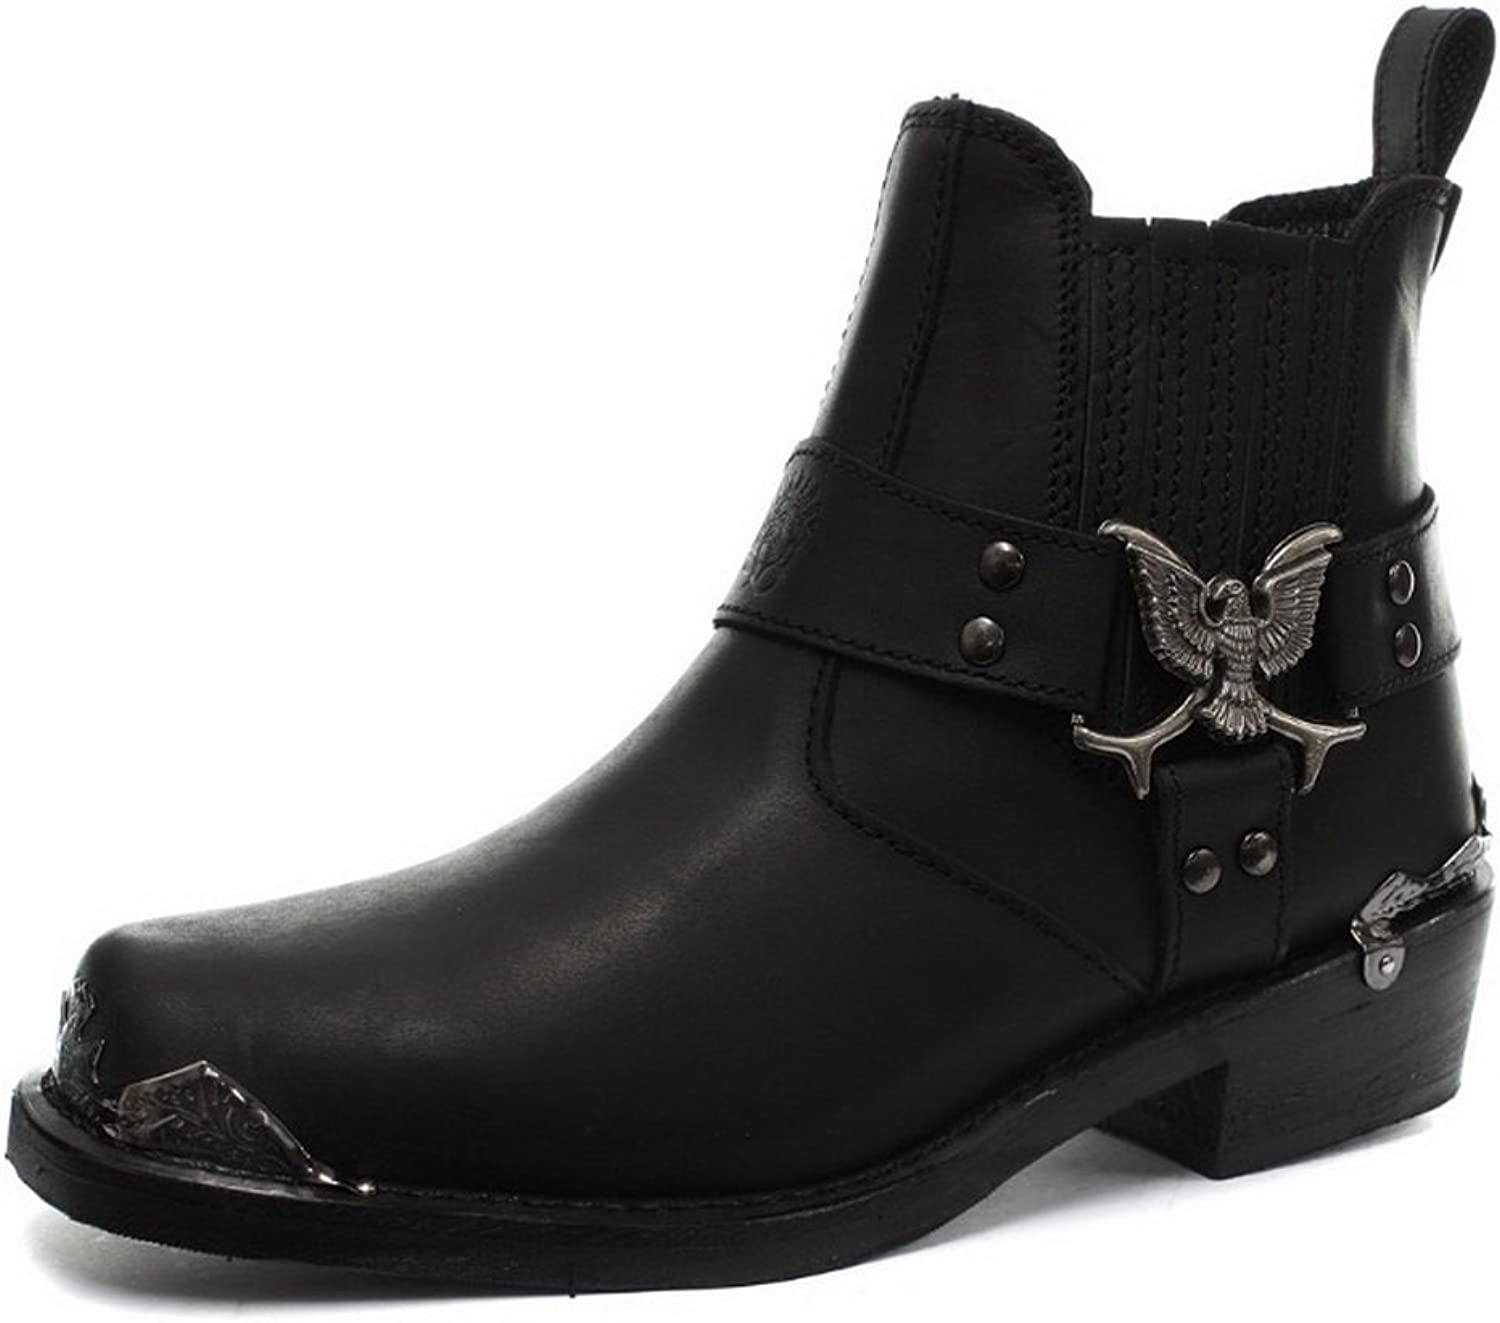 Grinders Eagle Emblem Ankle Biker Stylish Black Boots with Visible Steel Toe Cap